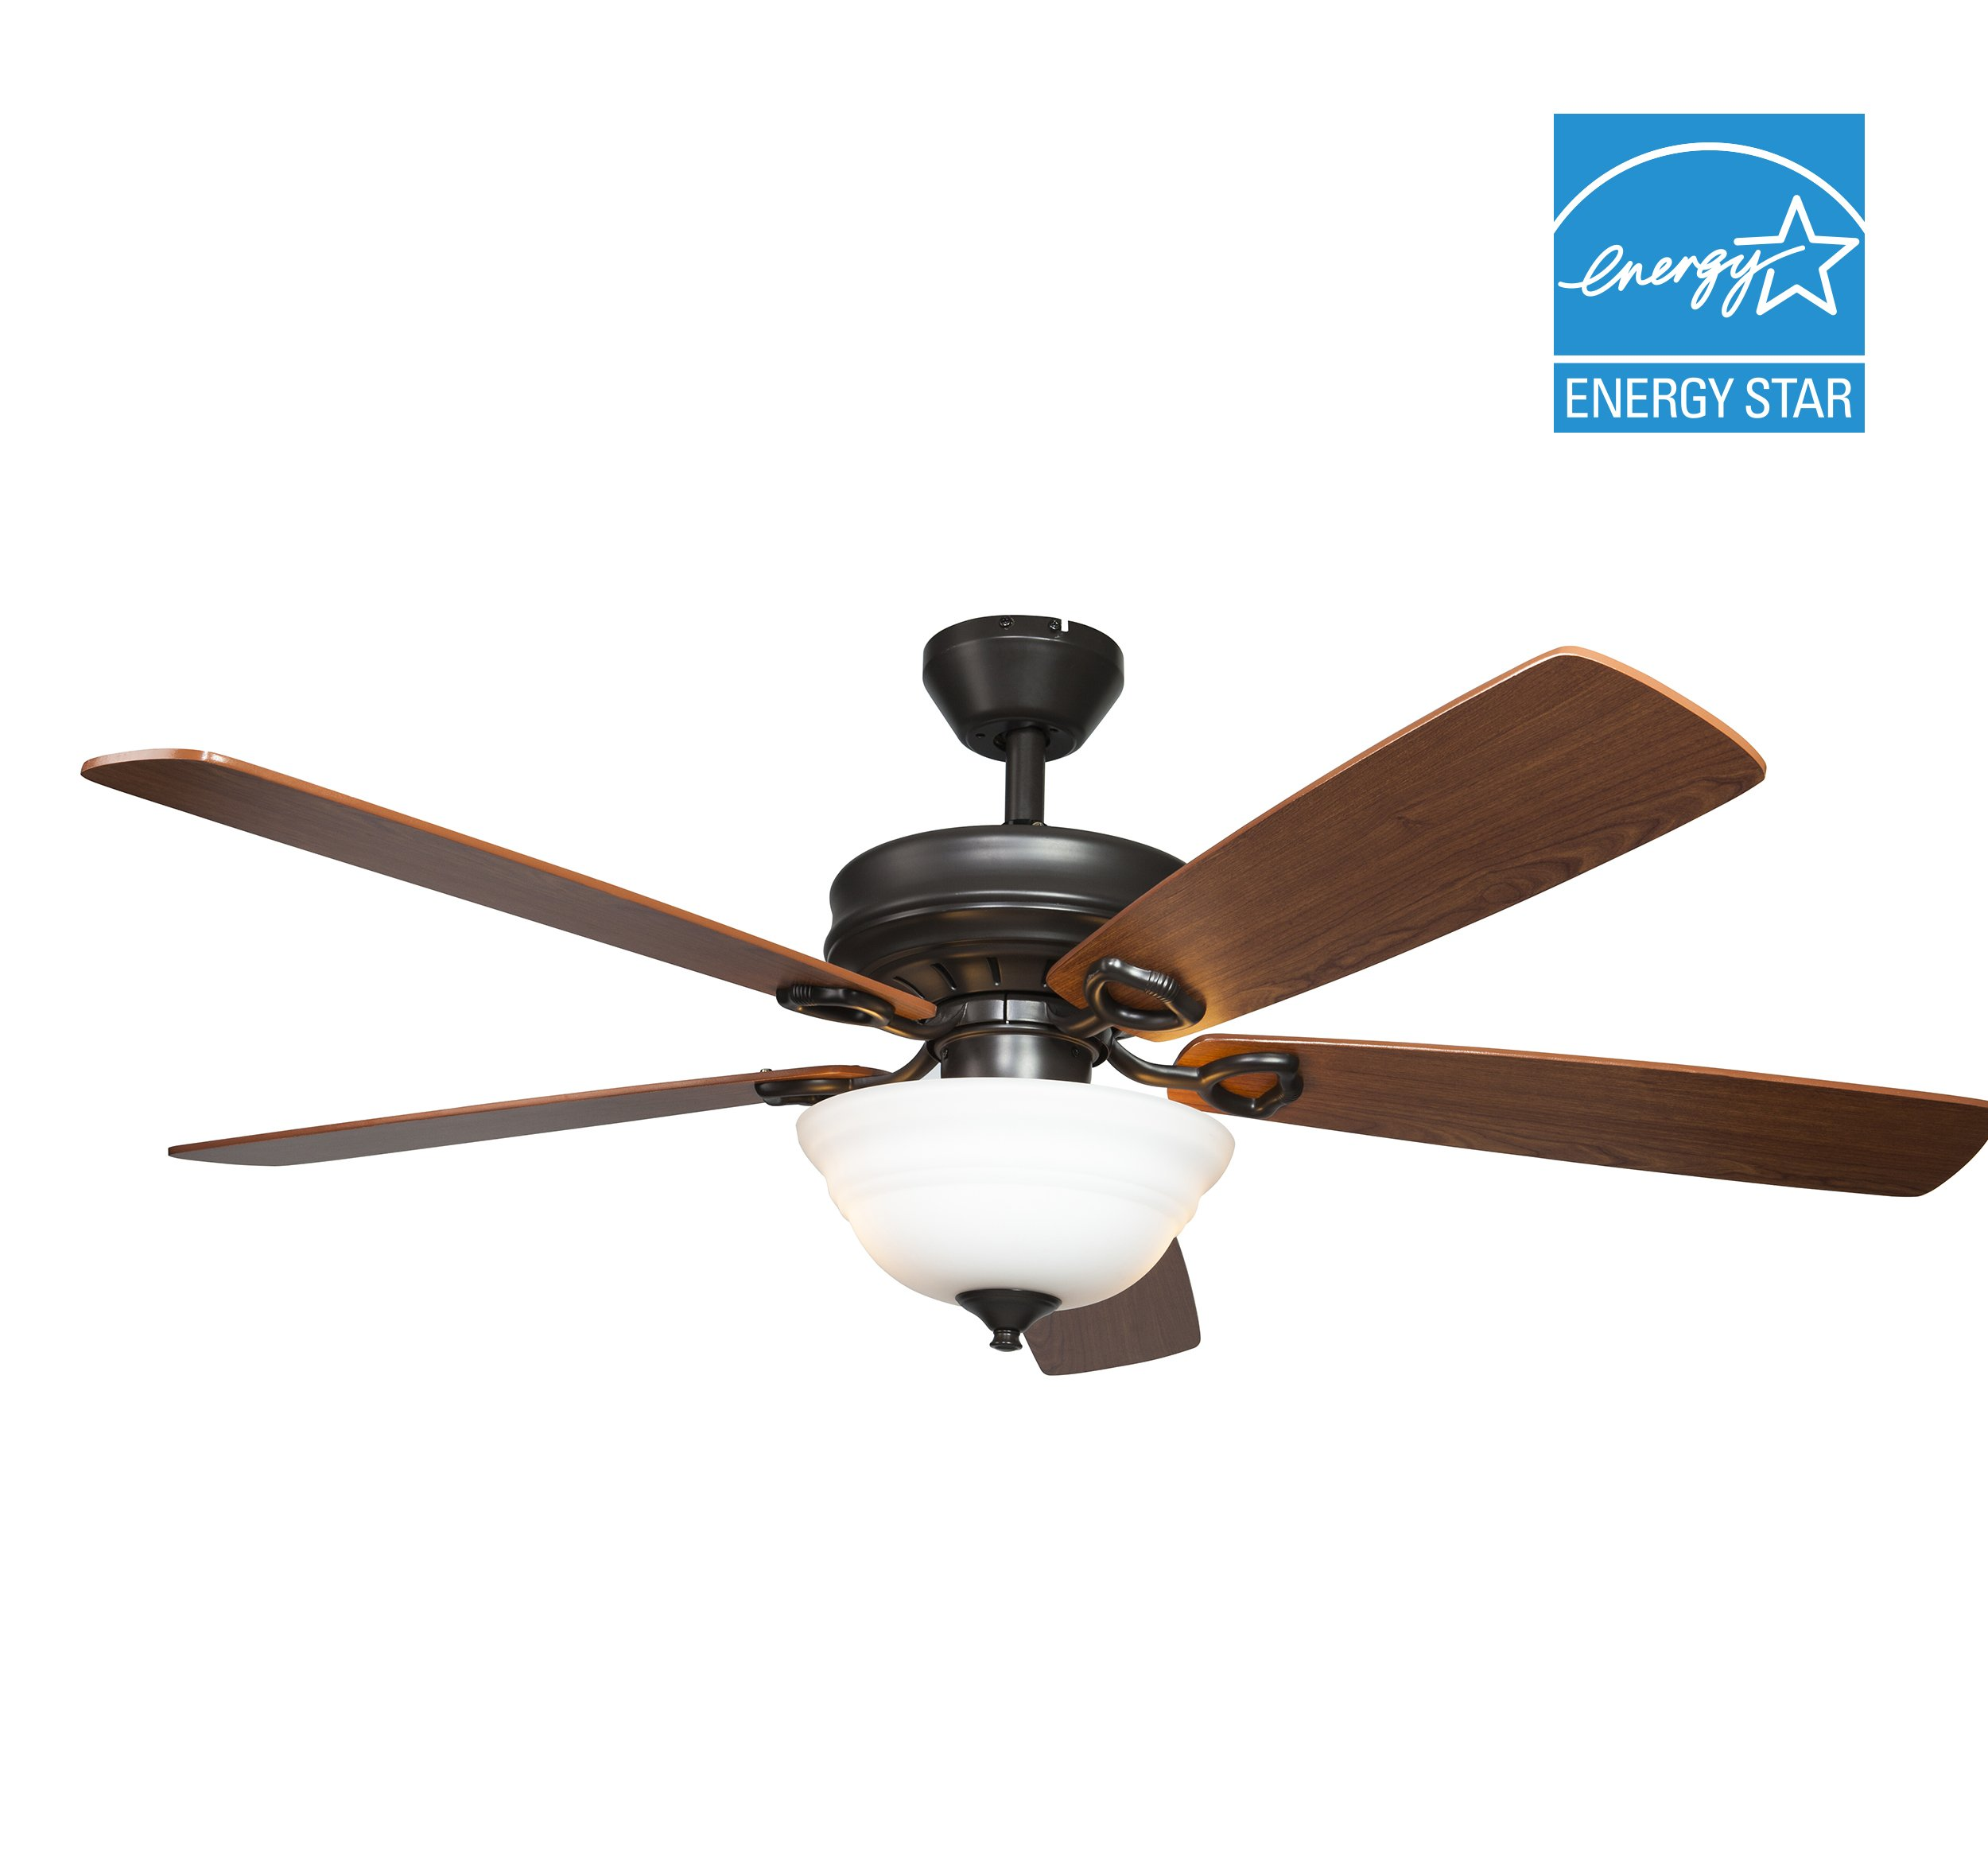 Hyperikon Indoor Ceiling Fan with Remote Control - 52-inch Wood Ceiling Fan, Energy Star - Black Fixture with Five Brown Blades and Frosted Dome Light - Bulb Not Included